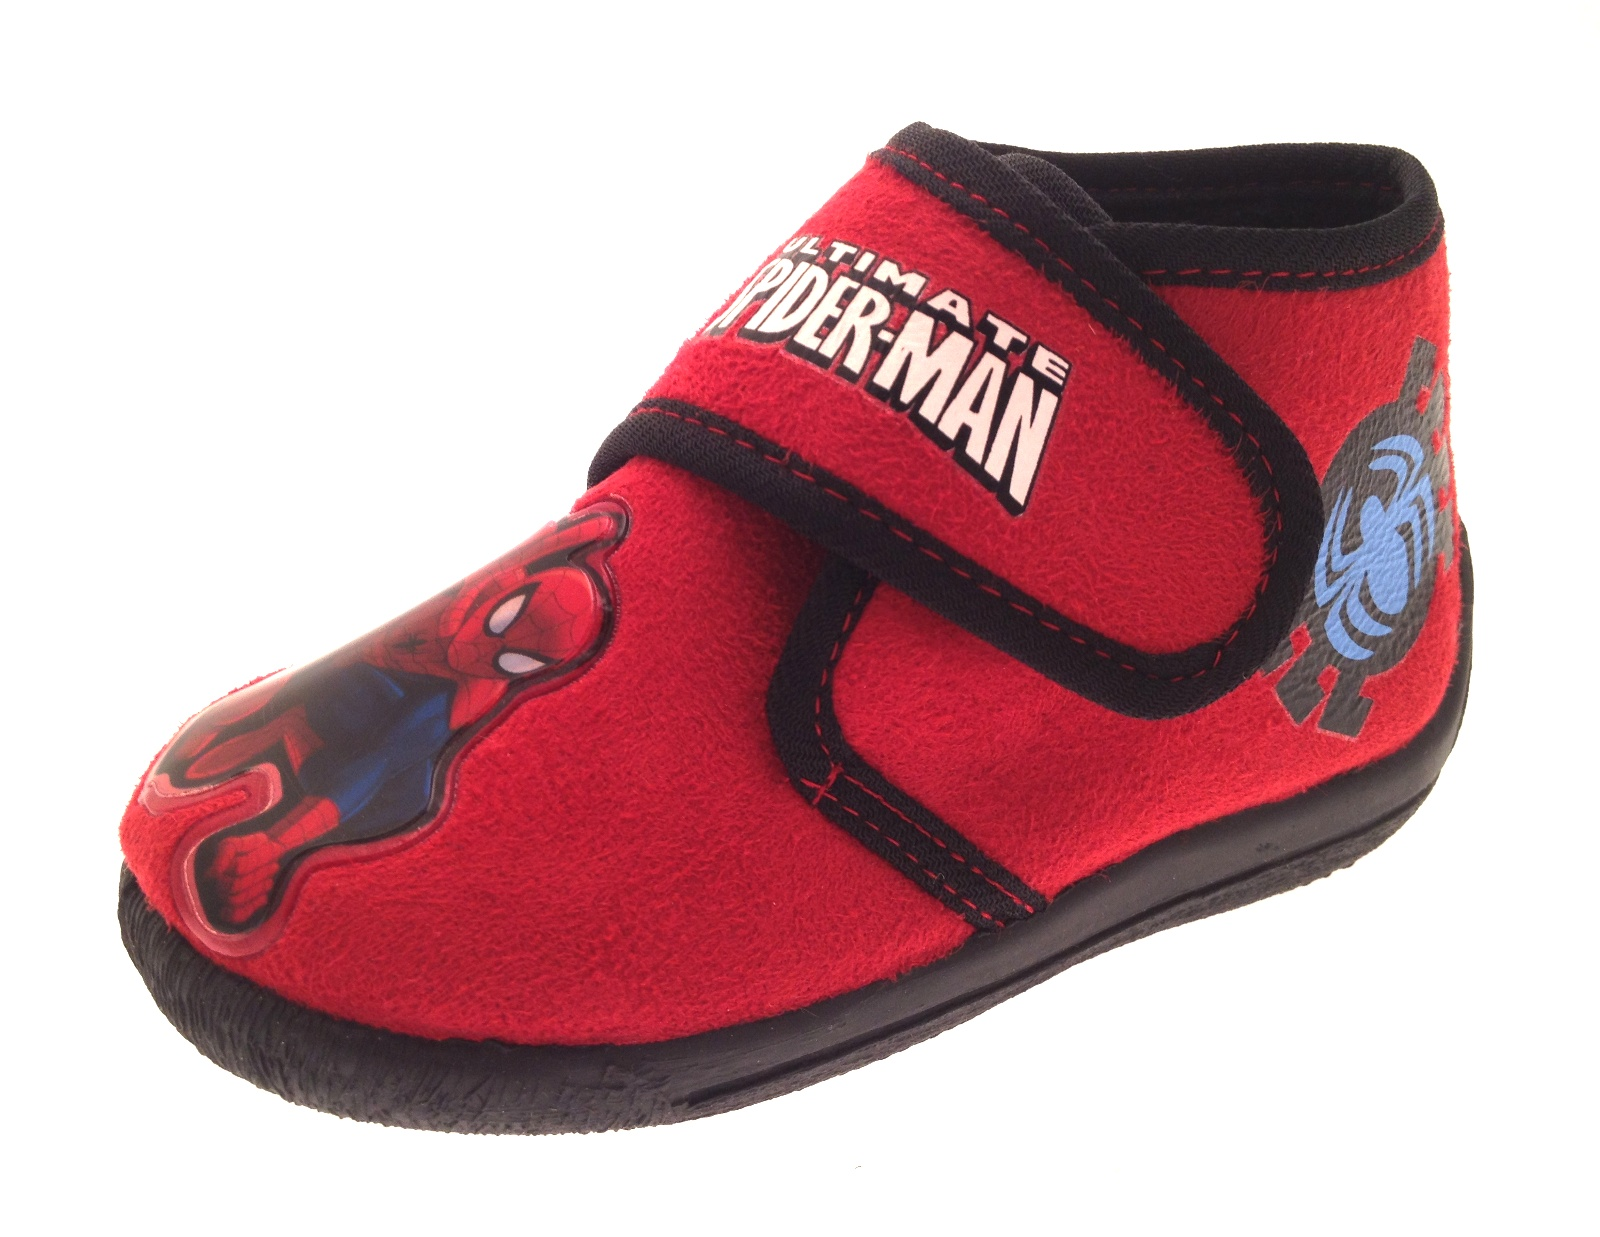 Shop for spiderman shoes online at Target. Free shipping on purchases over $35 and save 5% every day with your Target REDcard.